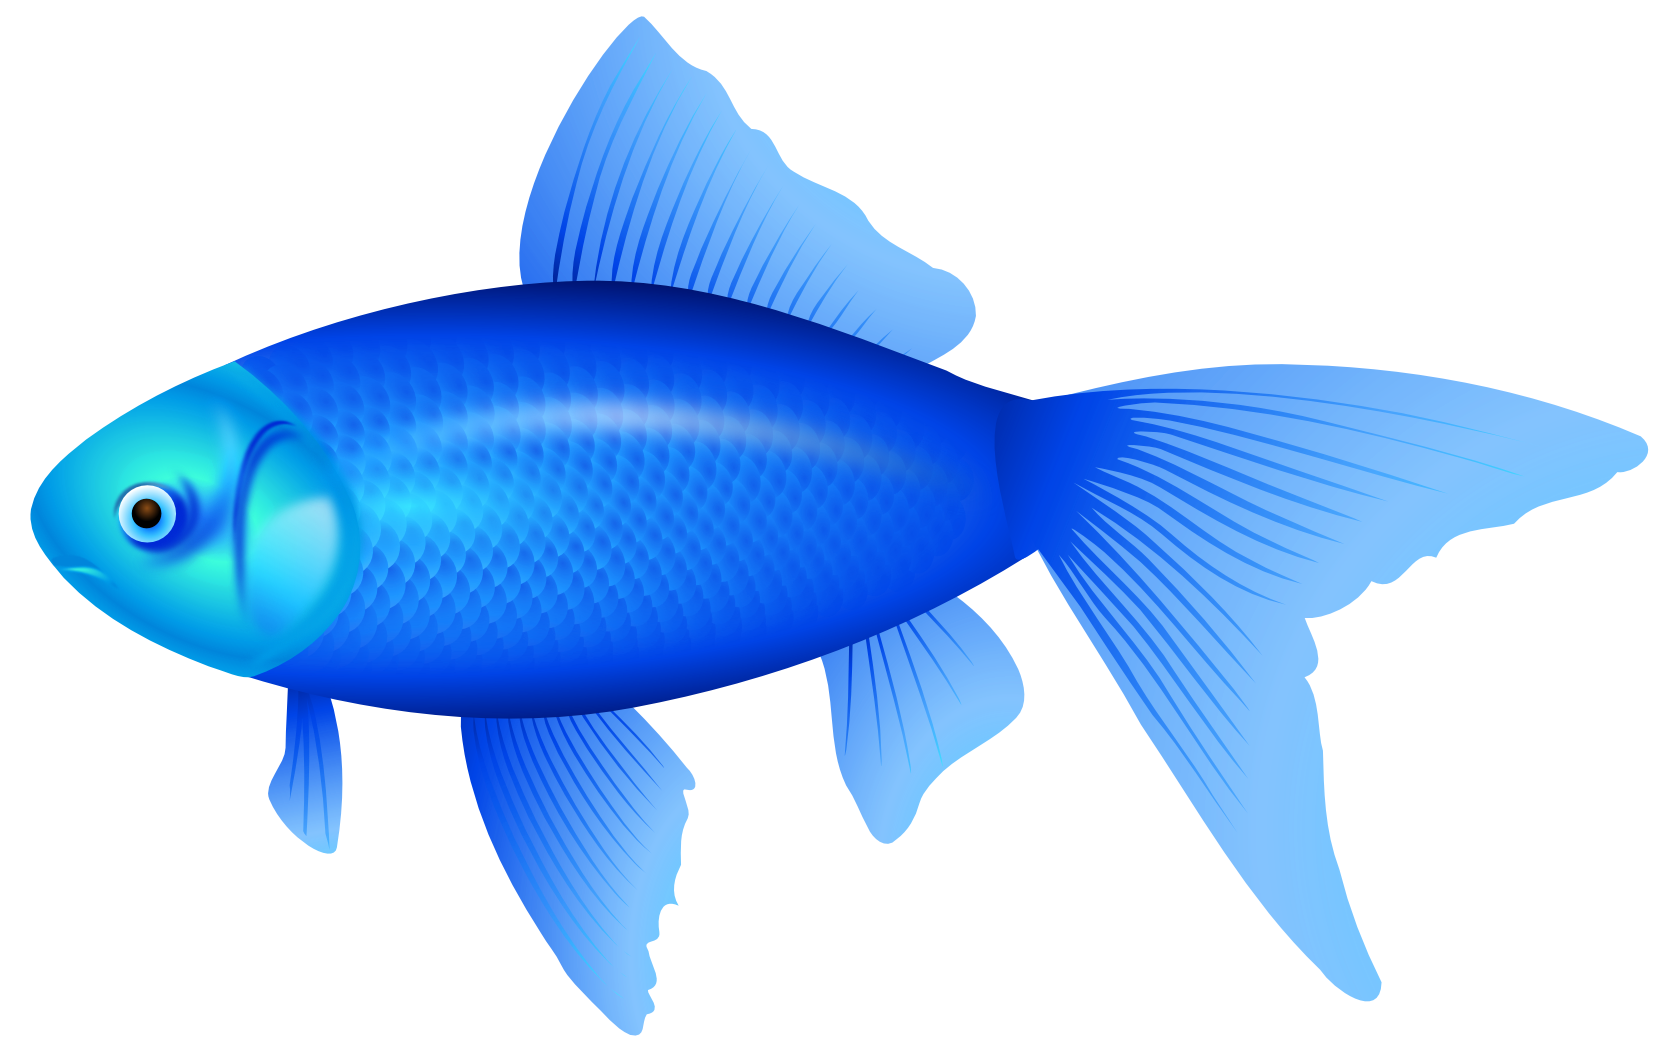 Best blue fish clipart 24751 for Fish clipart images